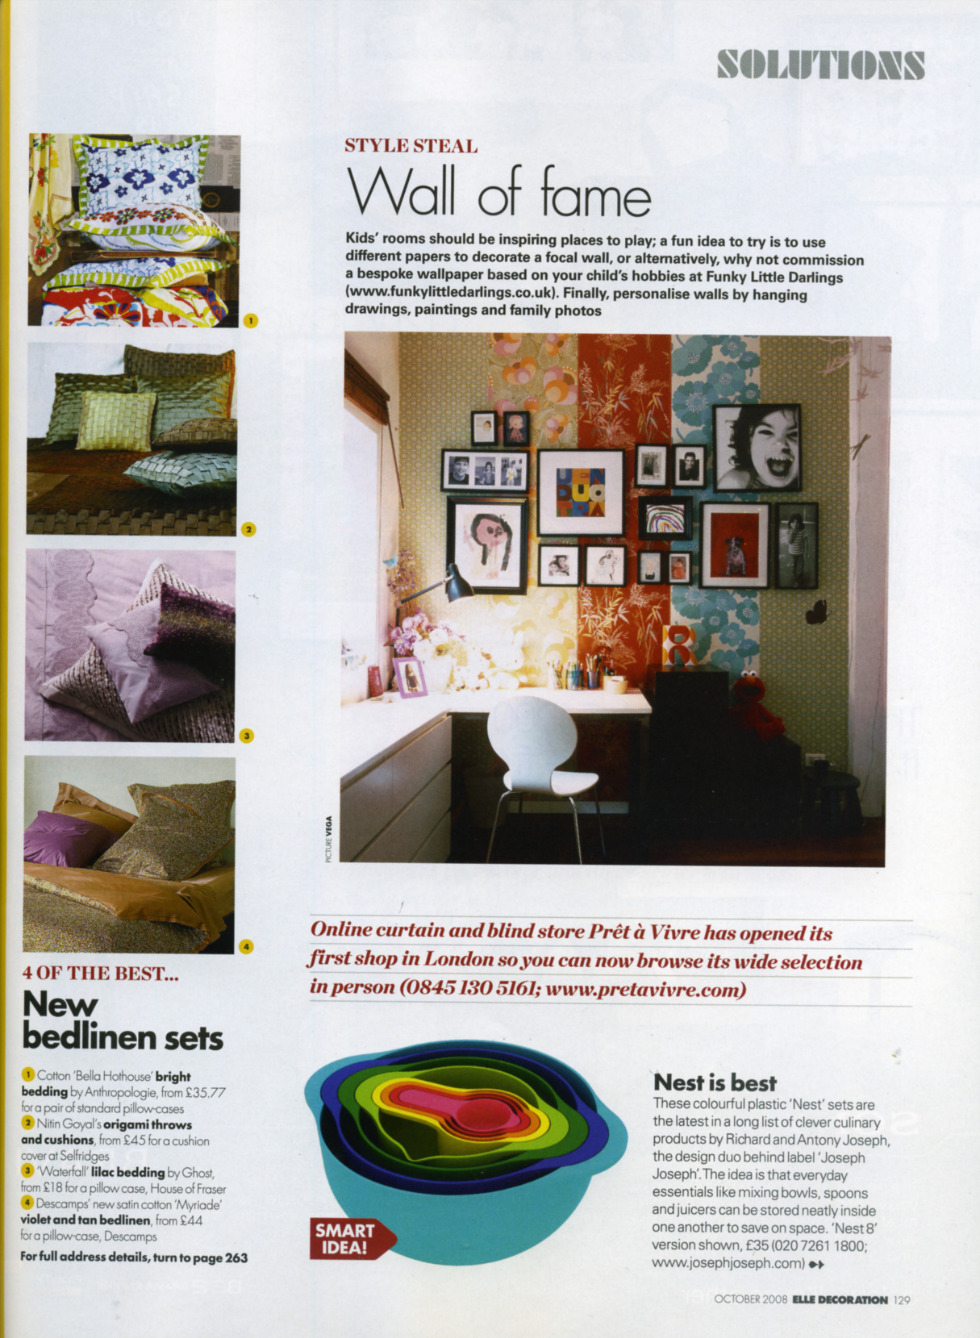 Elle Decoration feature with Funky Little Darlings. Wall of Fame - commission a bespoke children's wallpaper from Funky Little Darlings